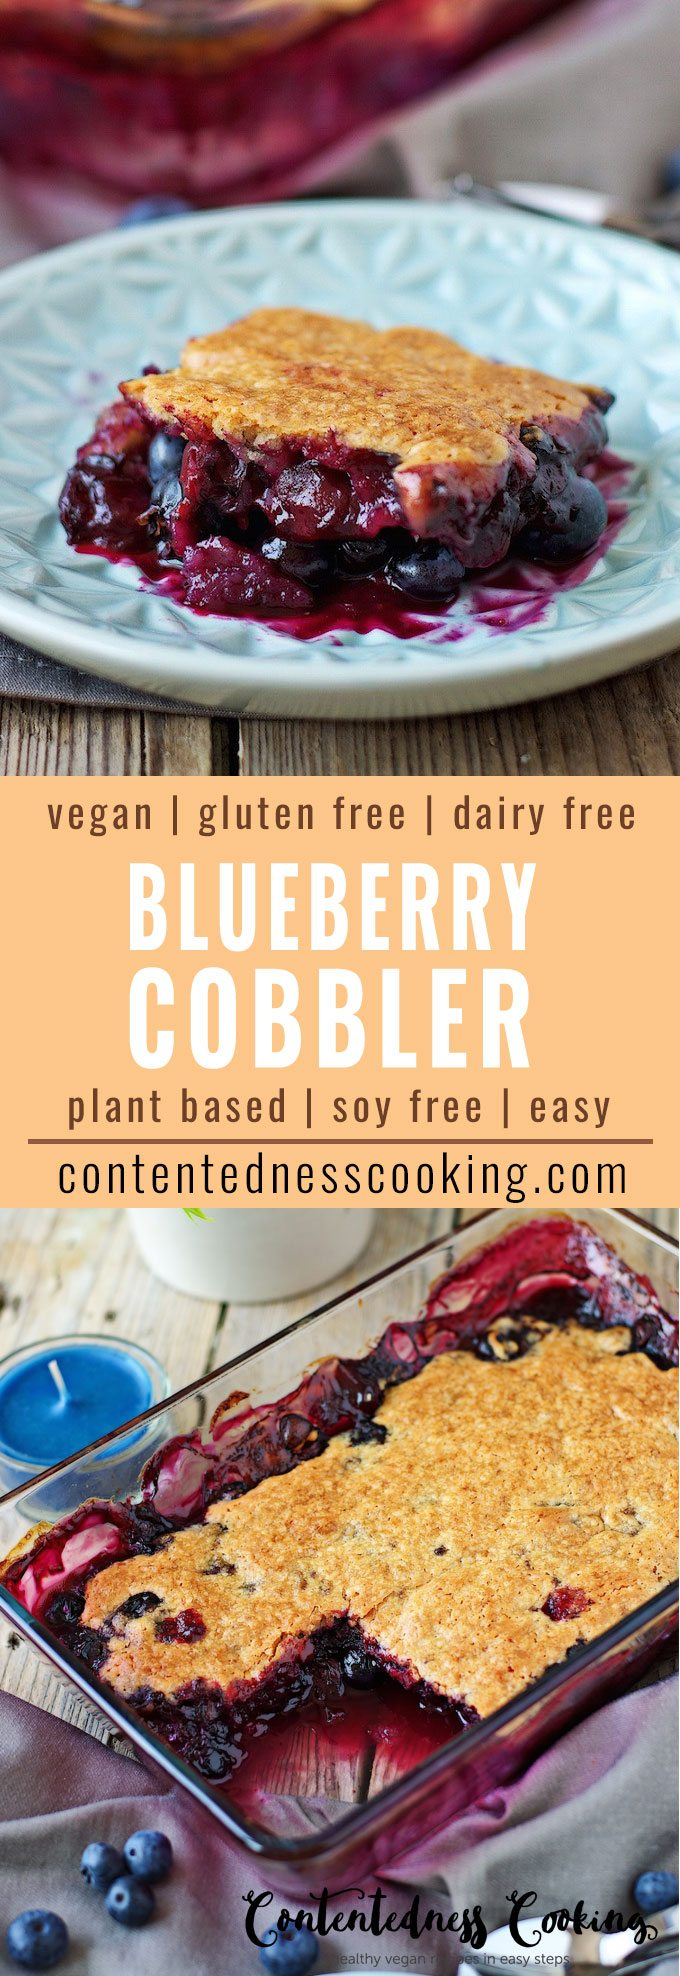 how to make cobbler with gluten free bisquick